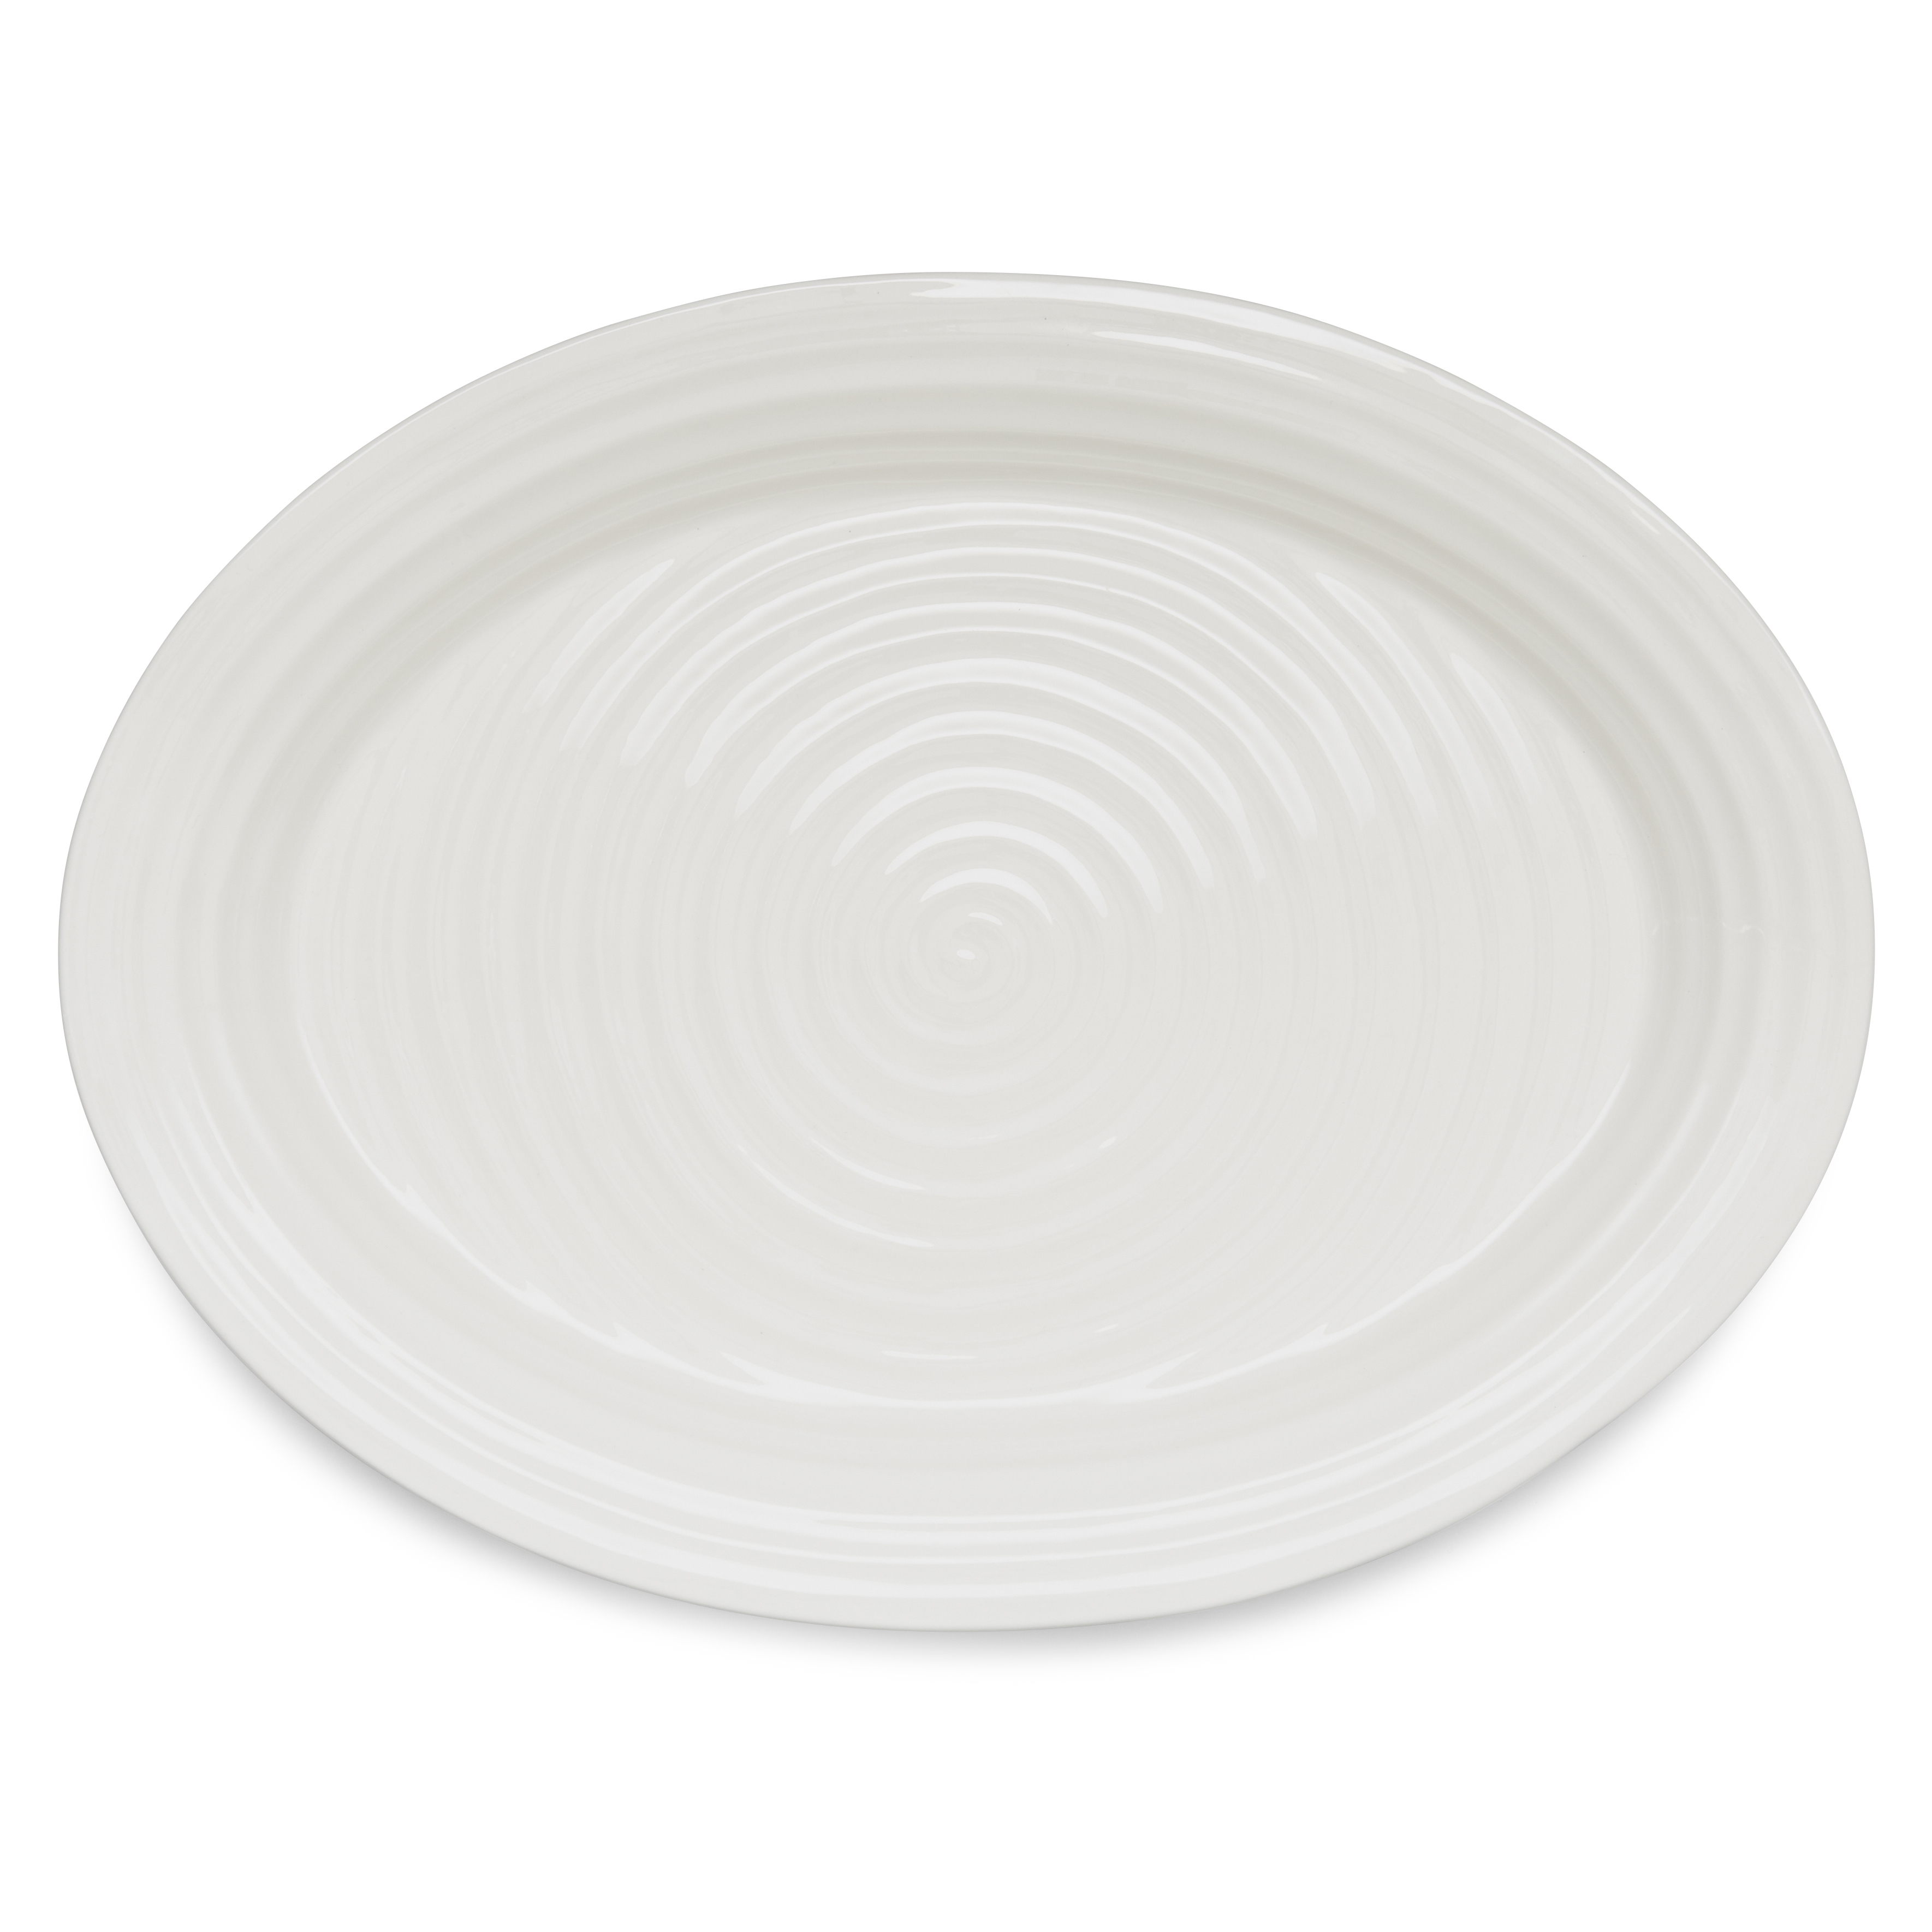 Portmeirion Sophie Conran White Large Oval Platter image number 0